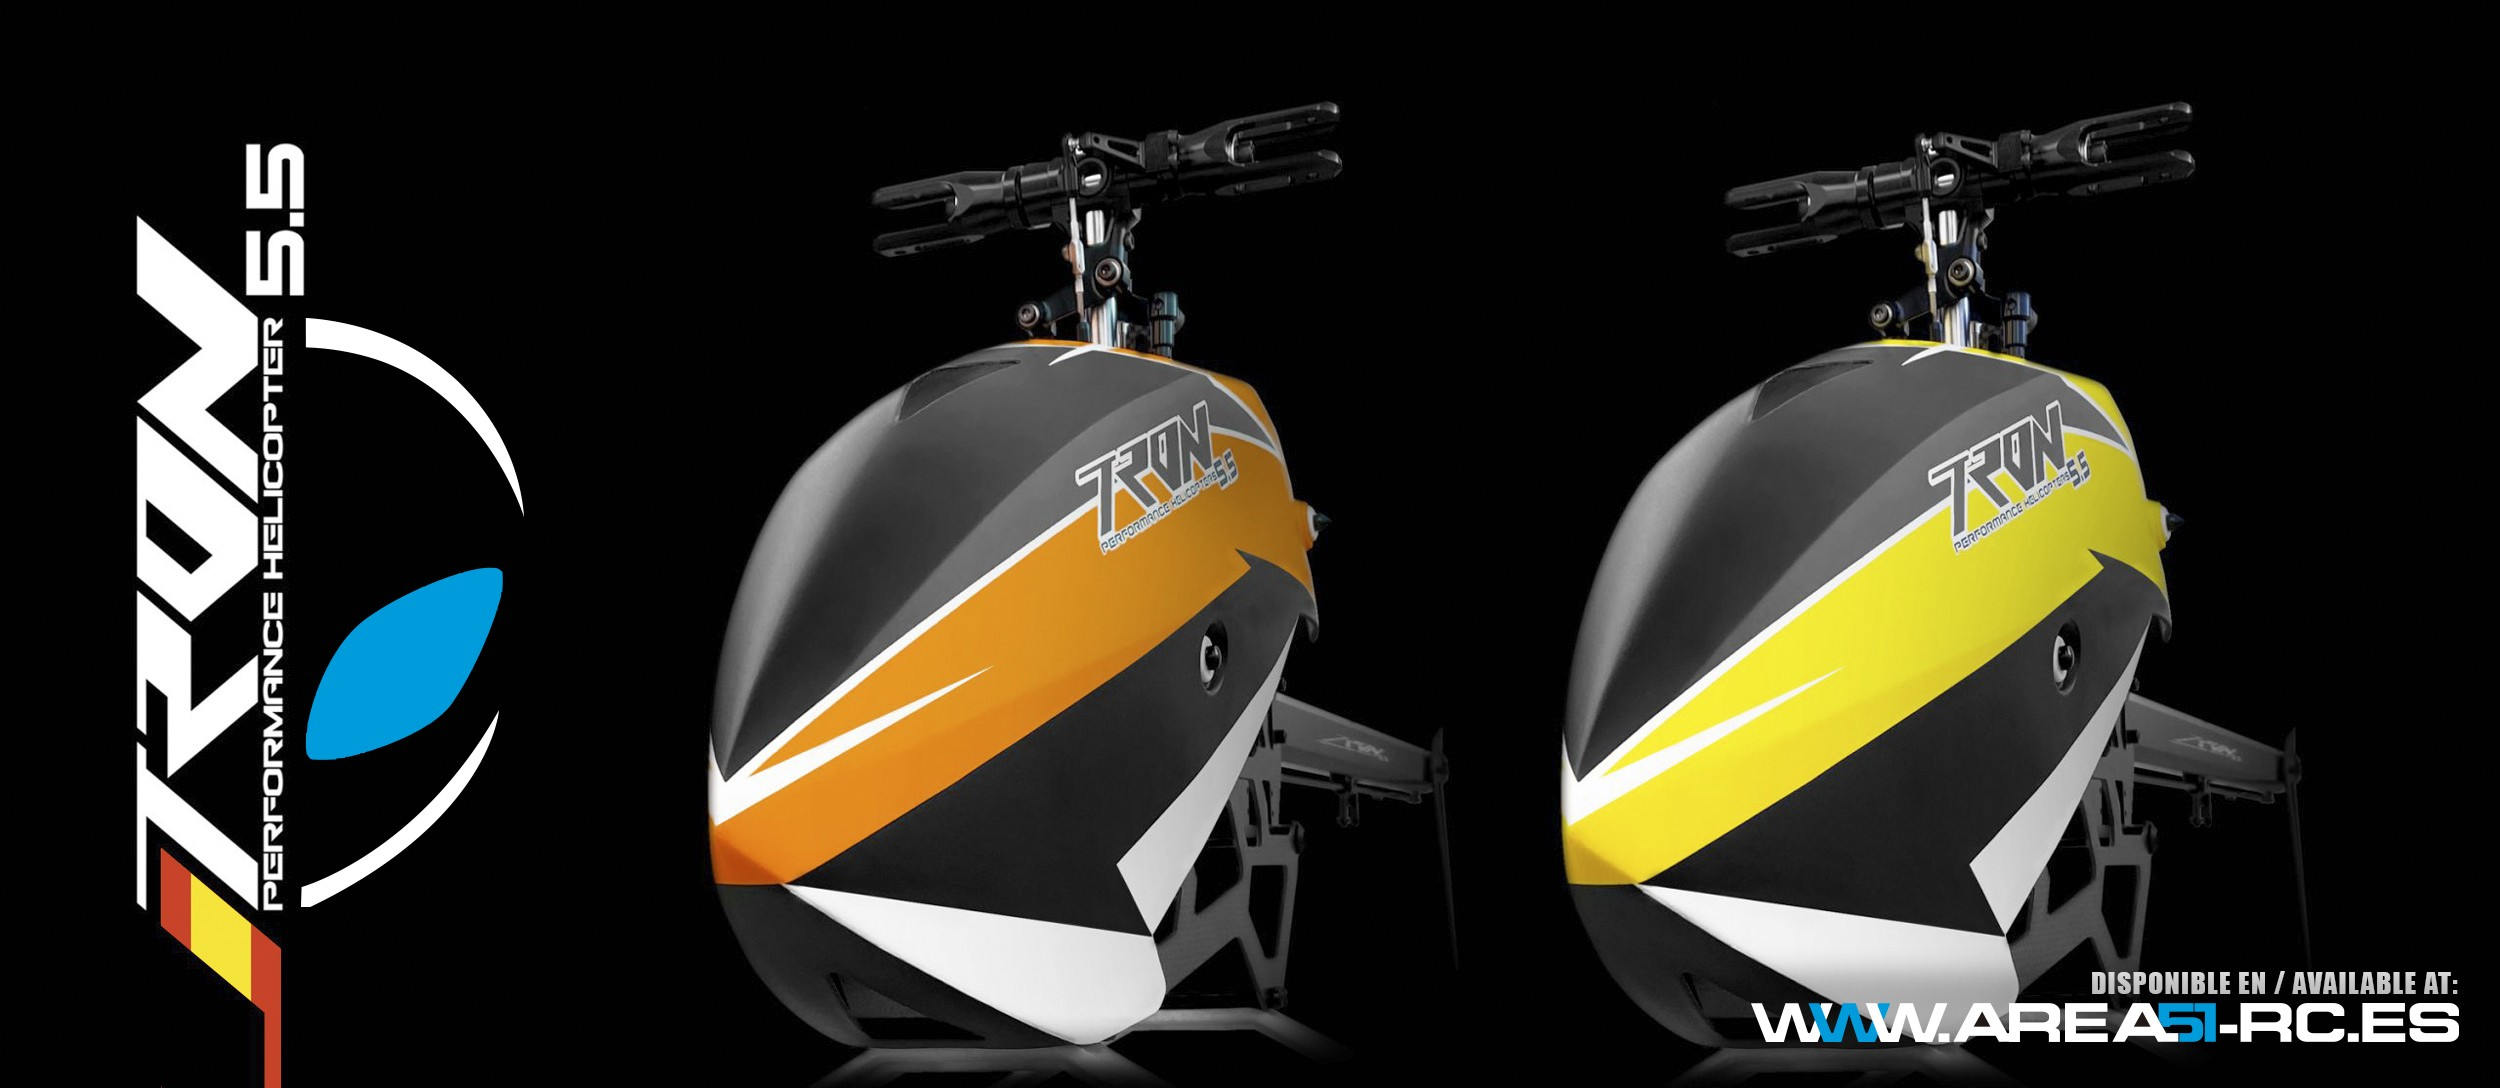 Tron Helicopters